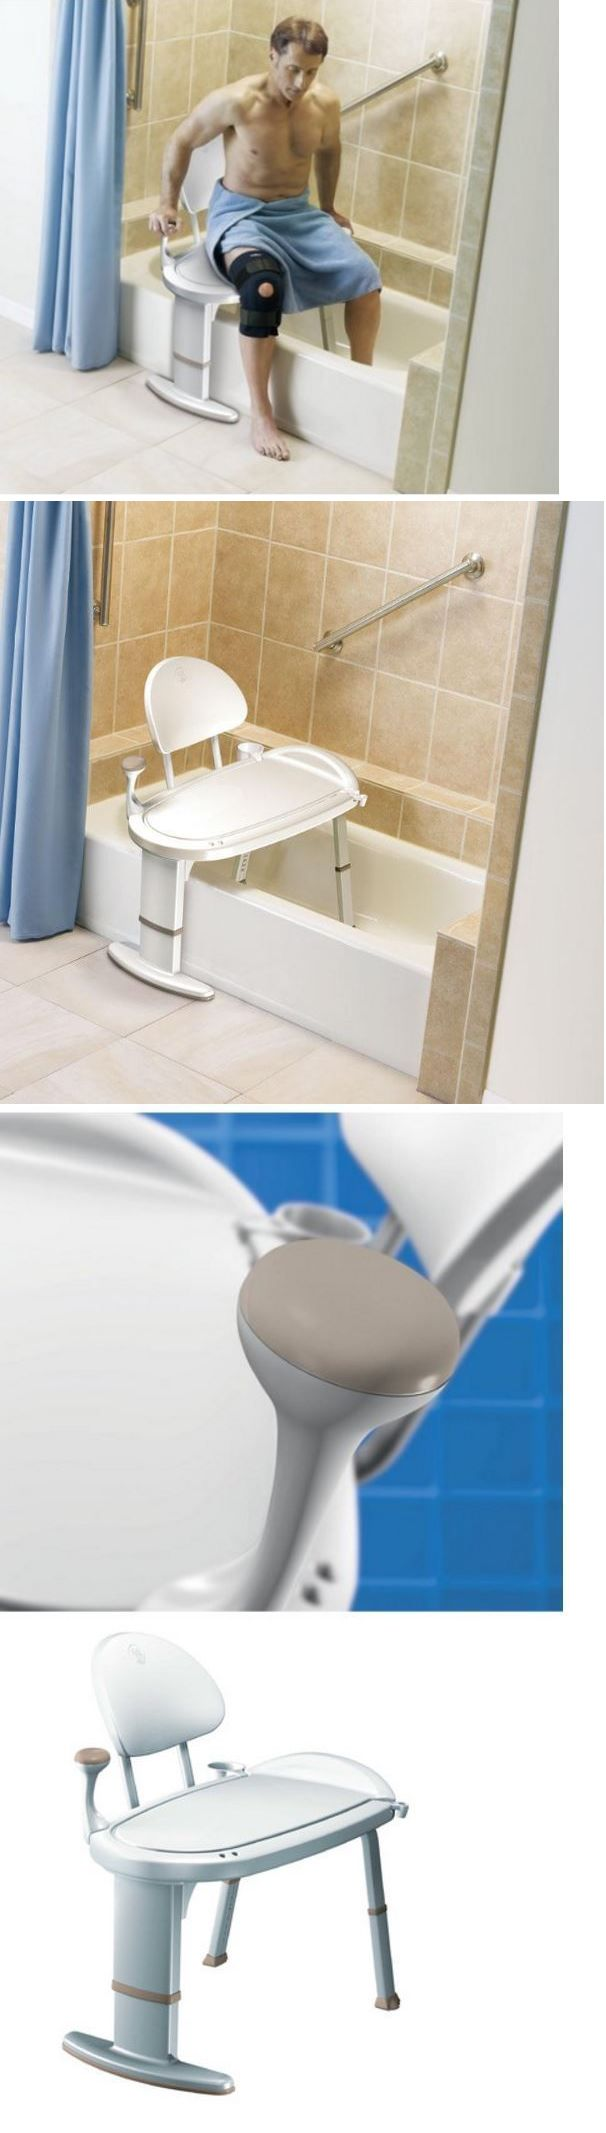 Shower and Bath Seats: Bath Bench Or Shower Chair Tub Transfer Bathroom Safety Equipment 400 Lb Support BUY IT NOW ONLY: $117.99